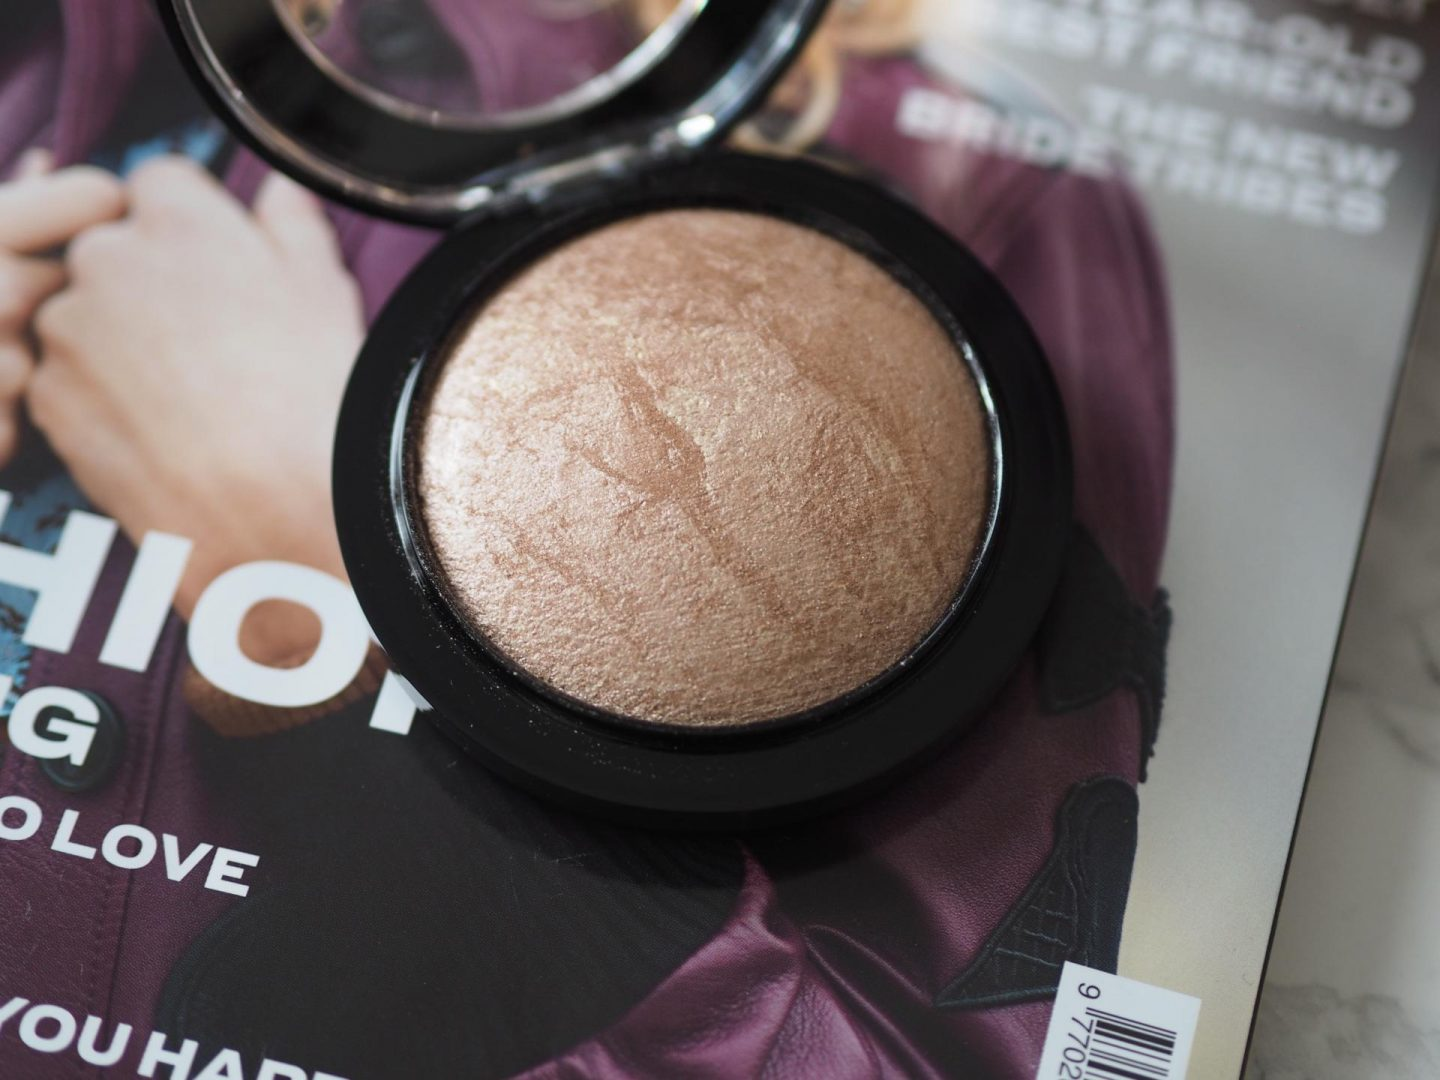 MAC Skinfinish Mineralize in Soft & Gentle